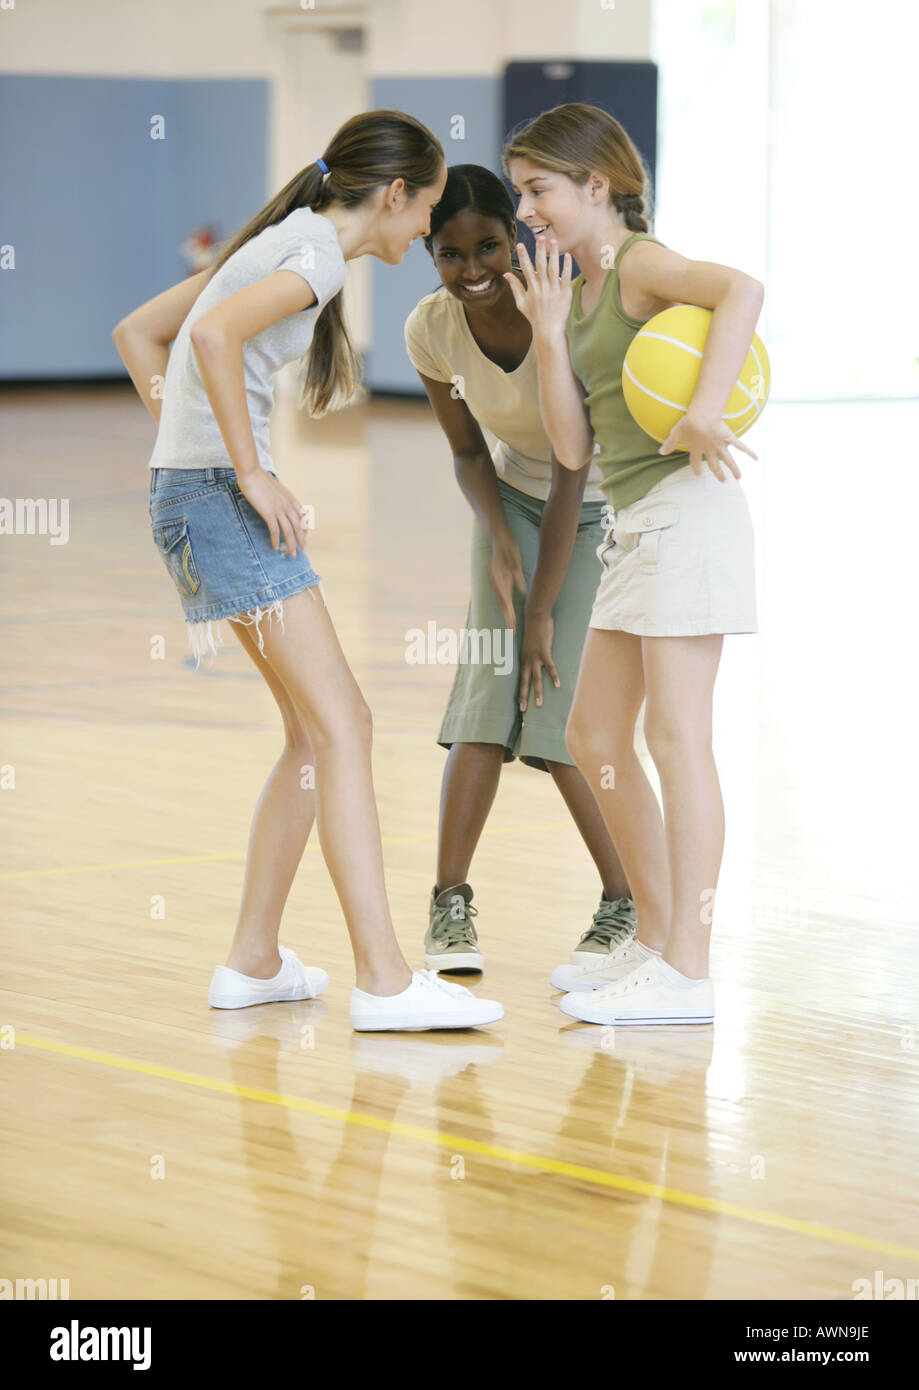 Three teen girls huddling in school gym - Stock Image